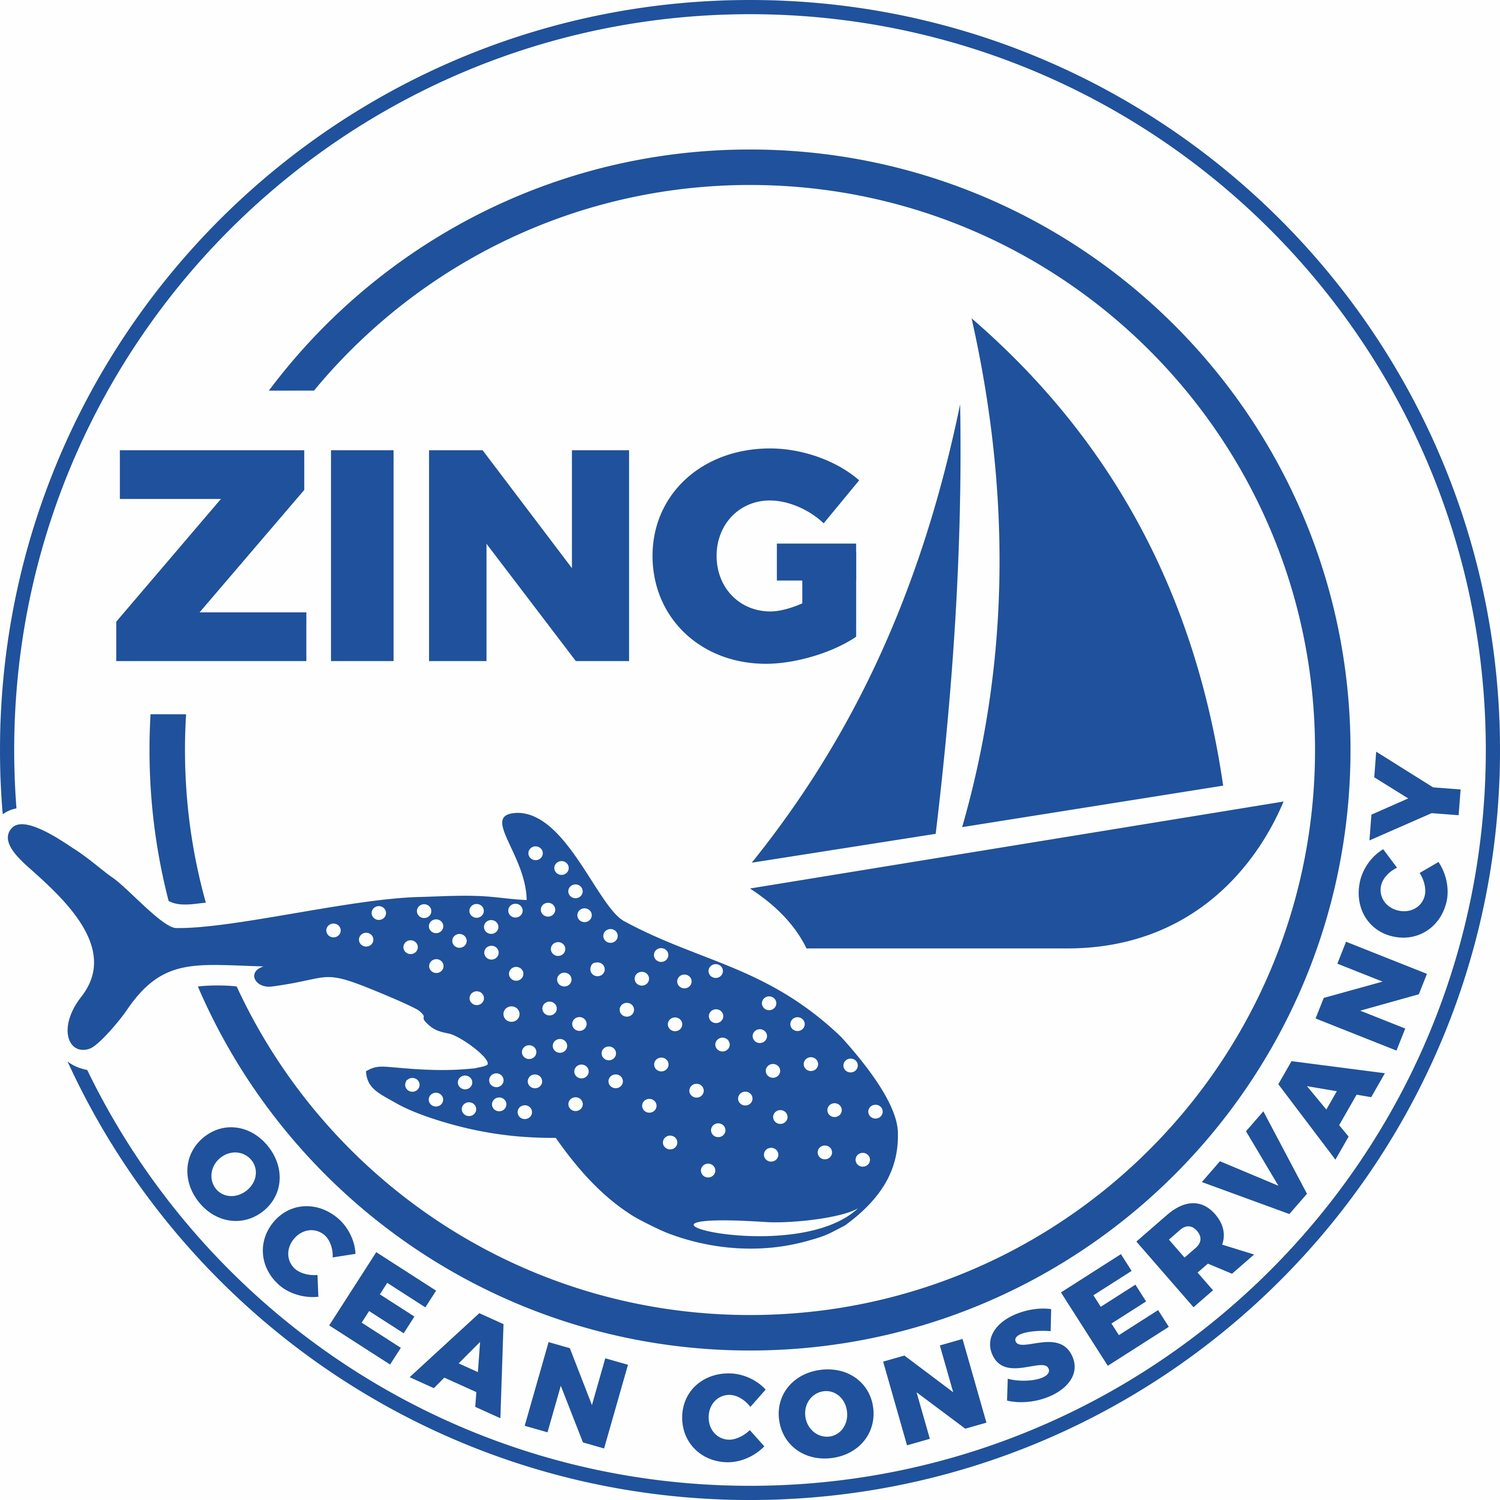 Zing Ocean Conservancy